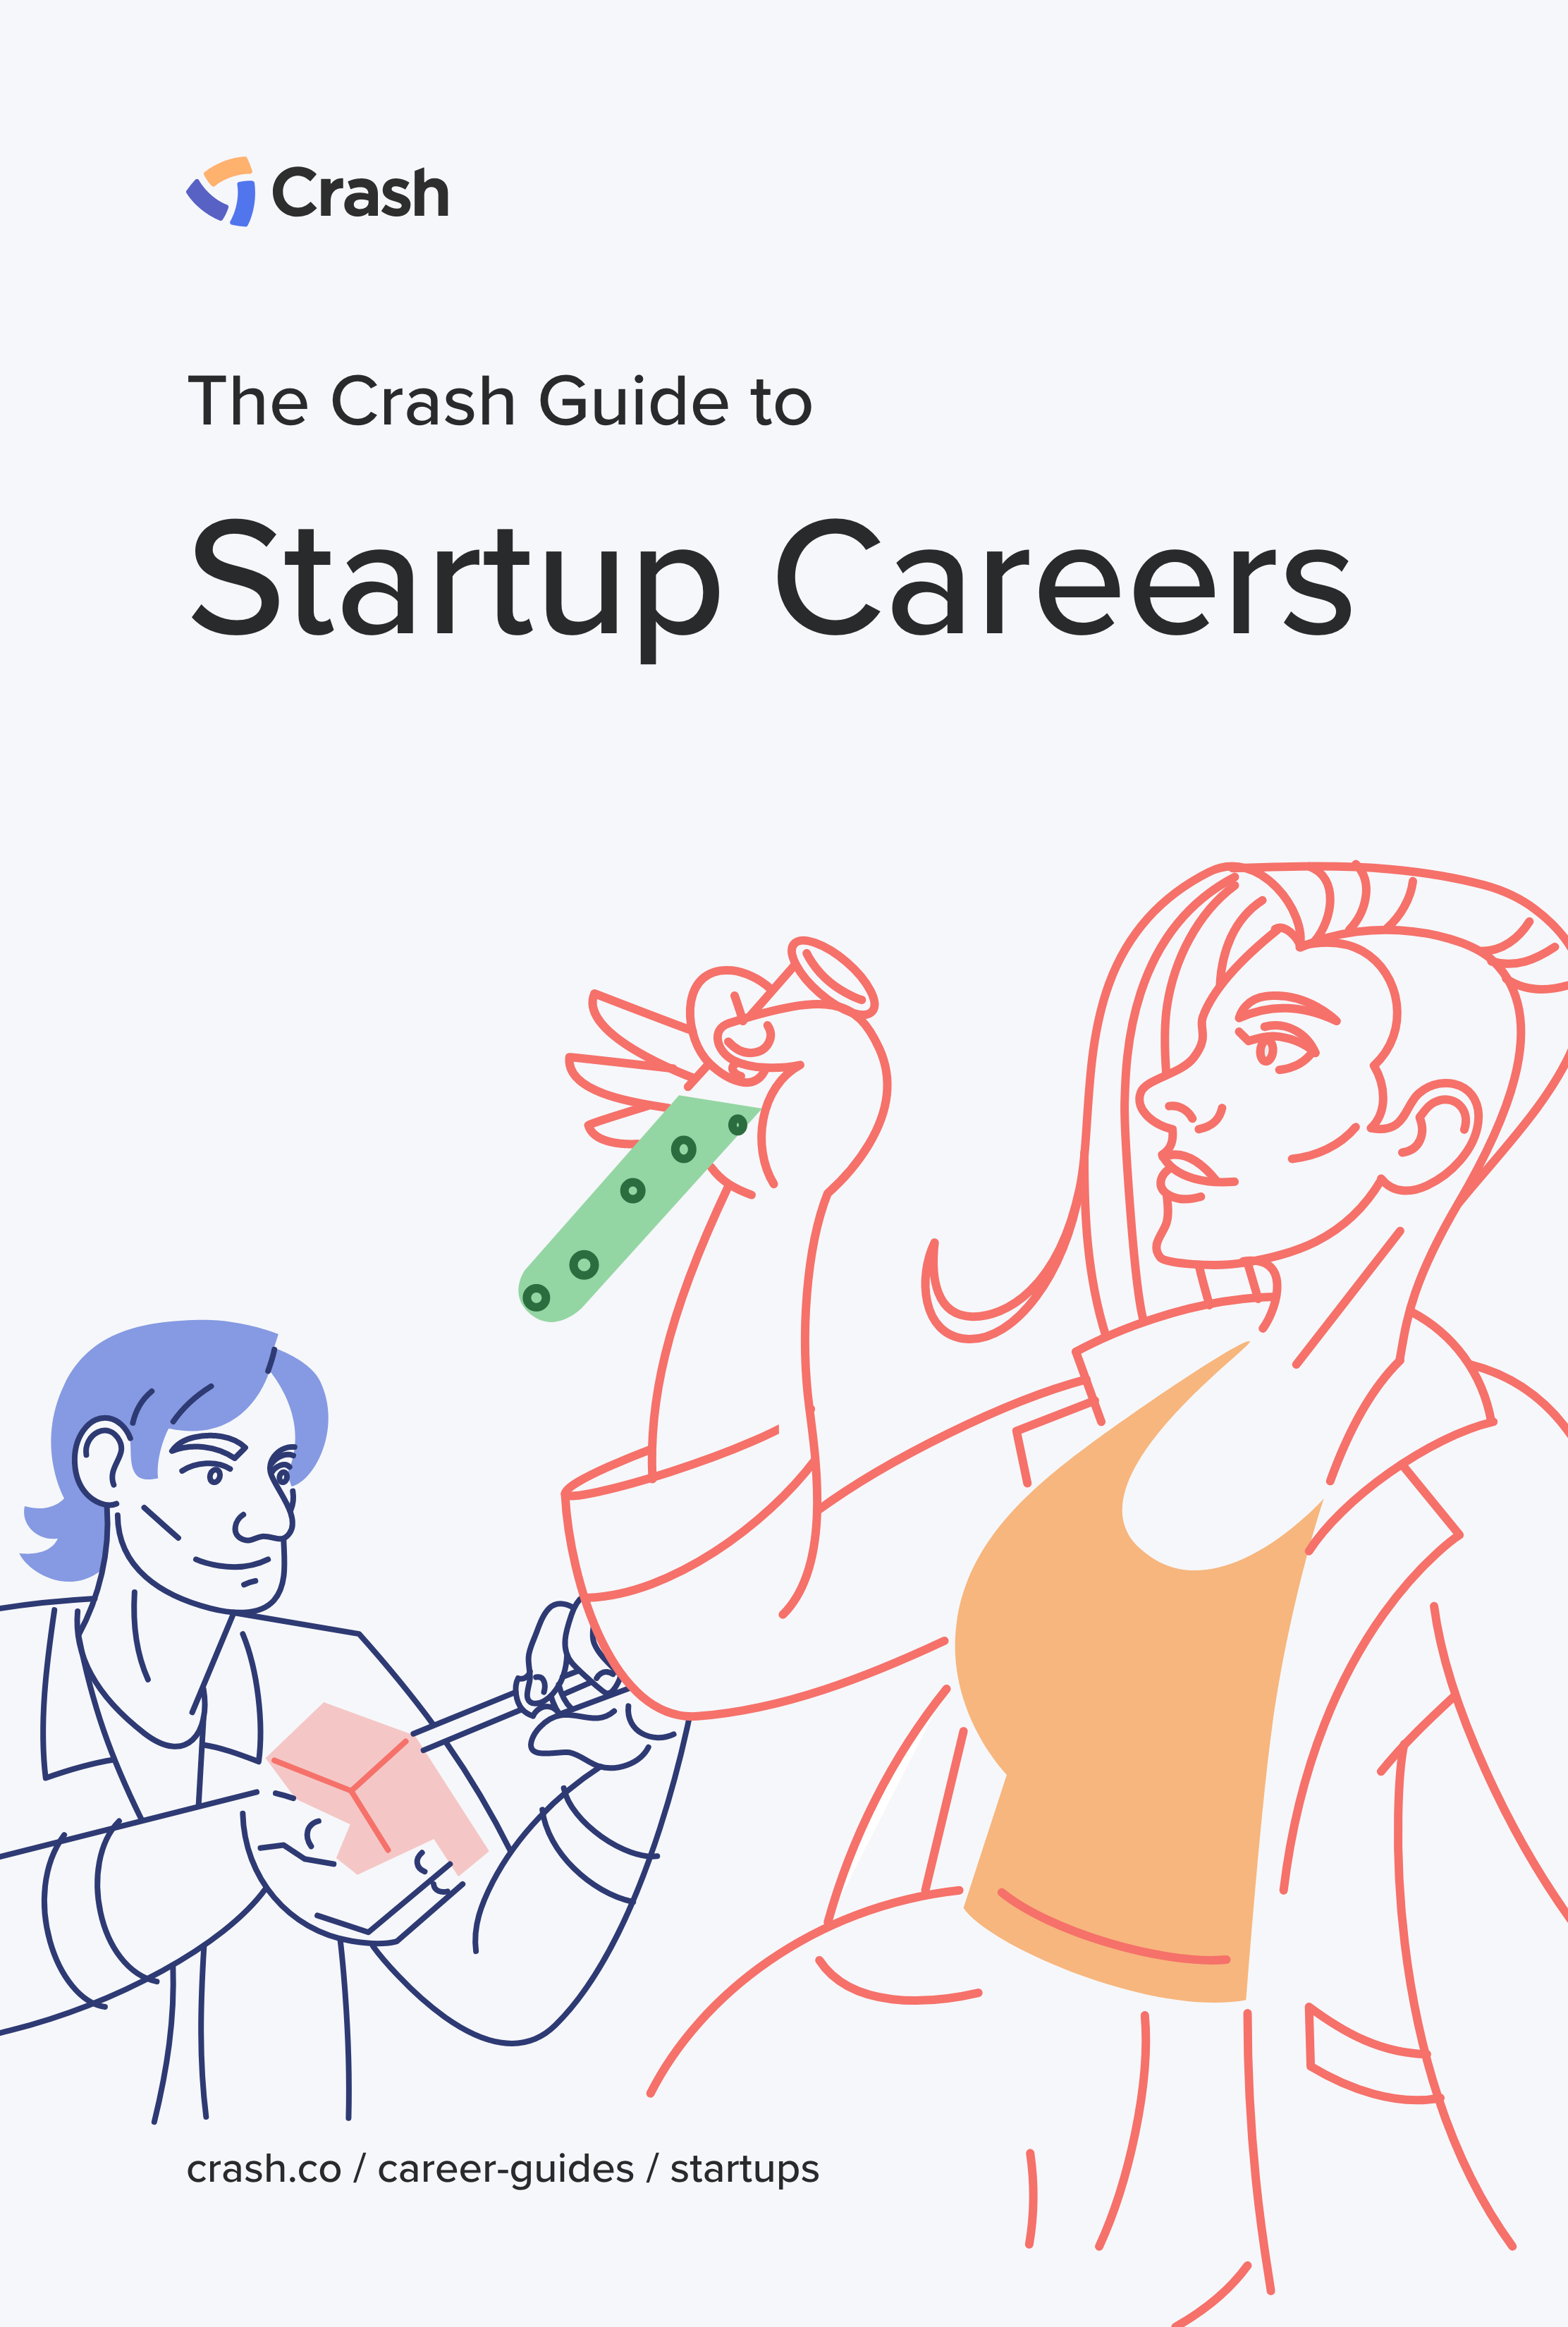 startup careers crash career guide cover image